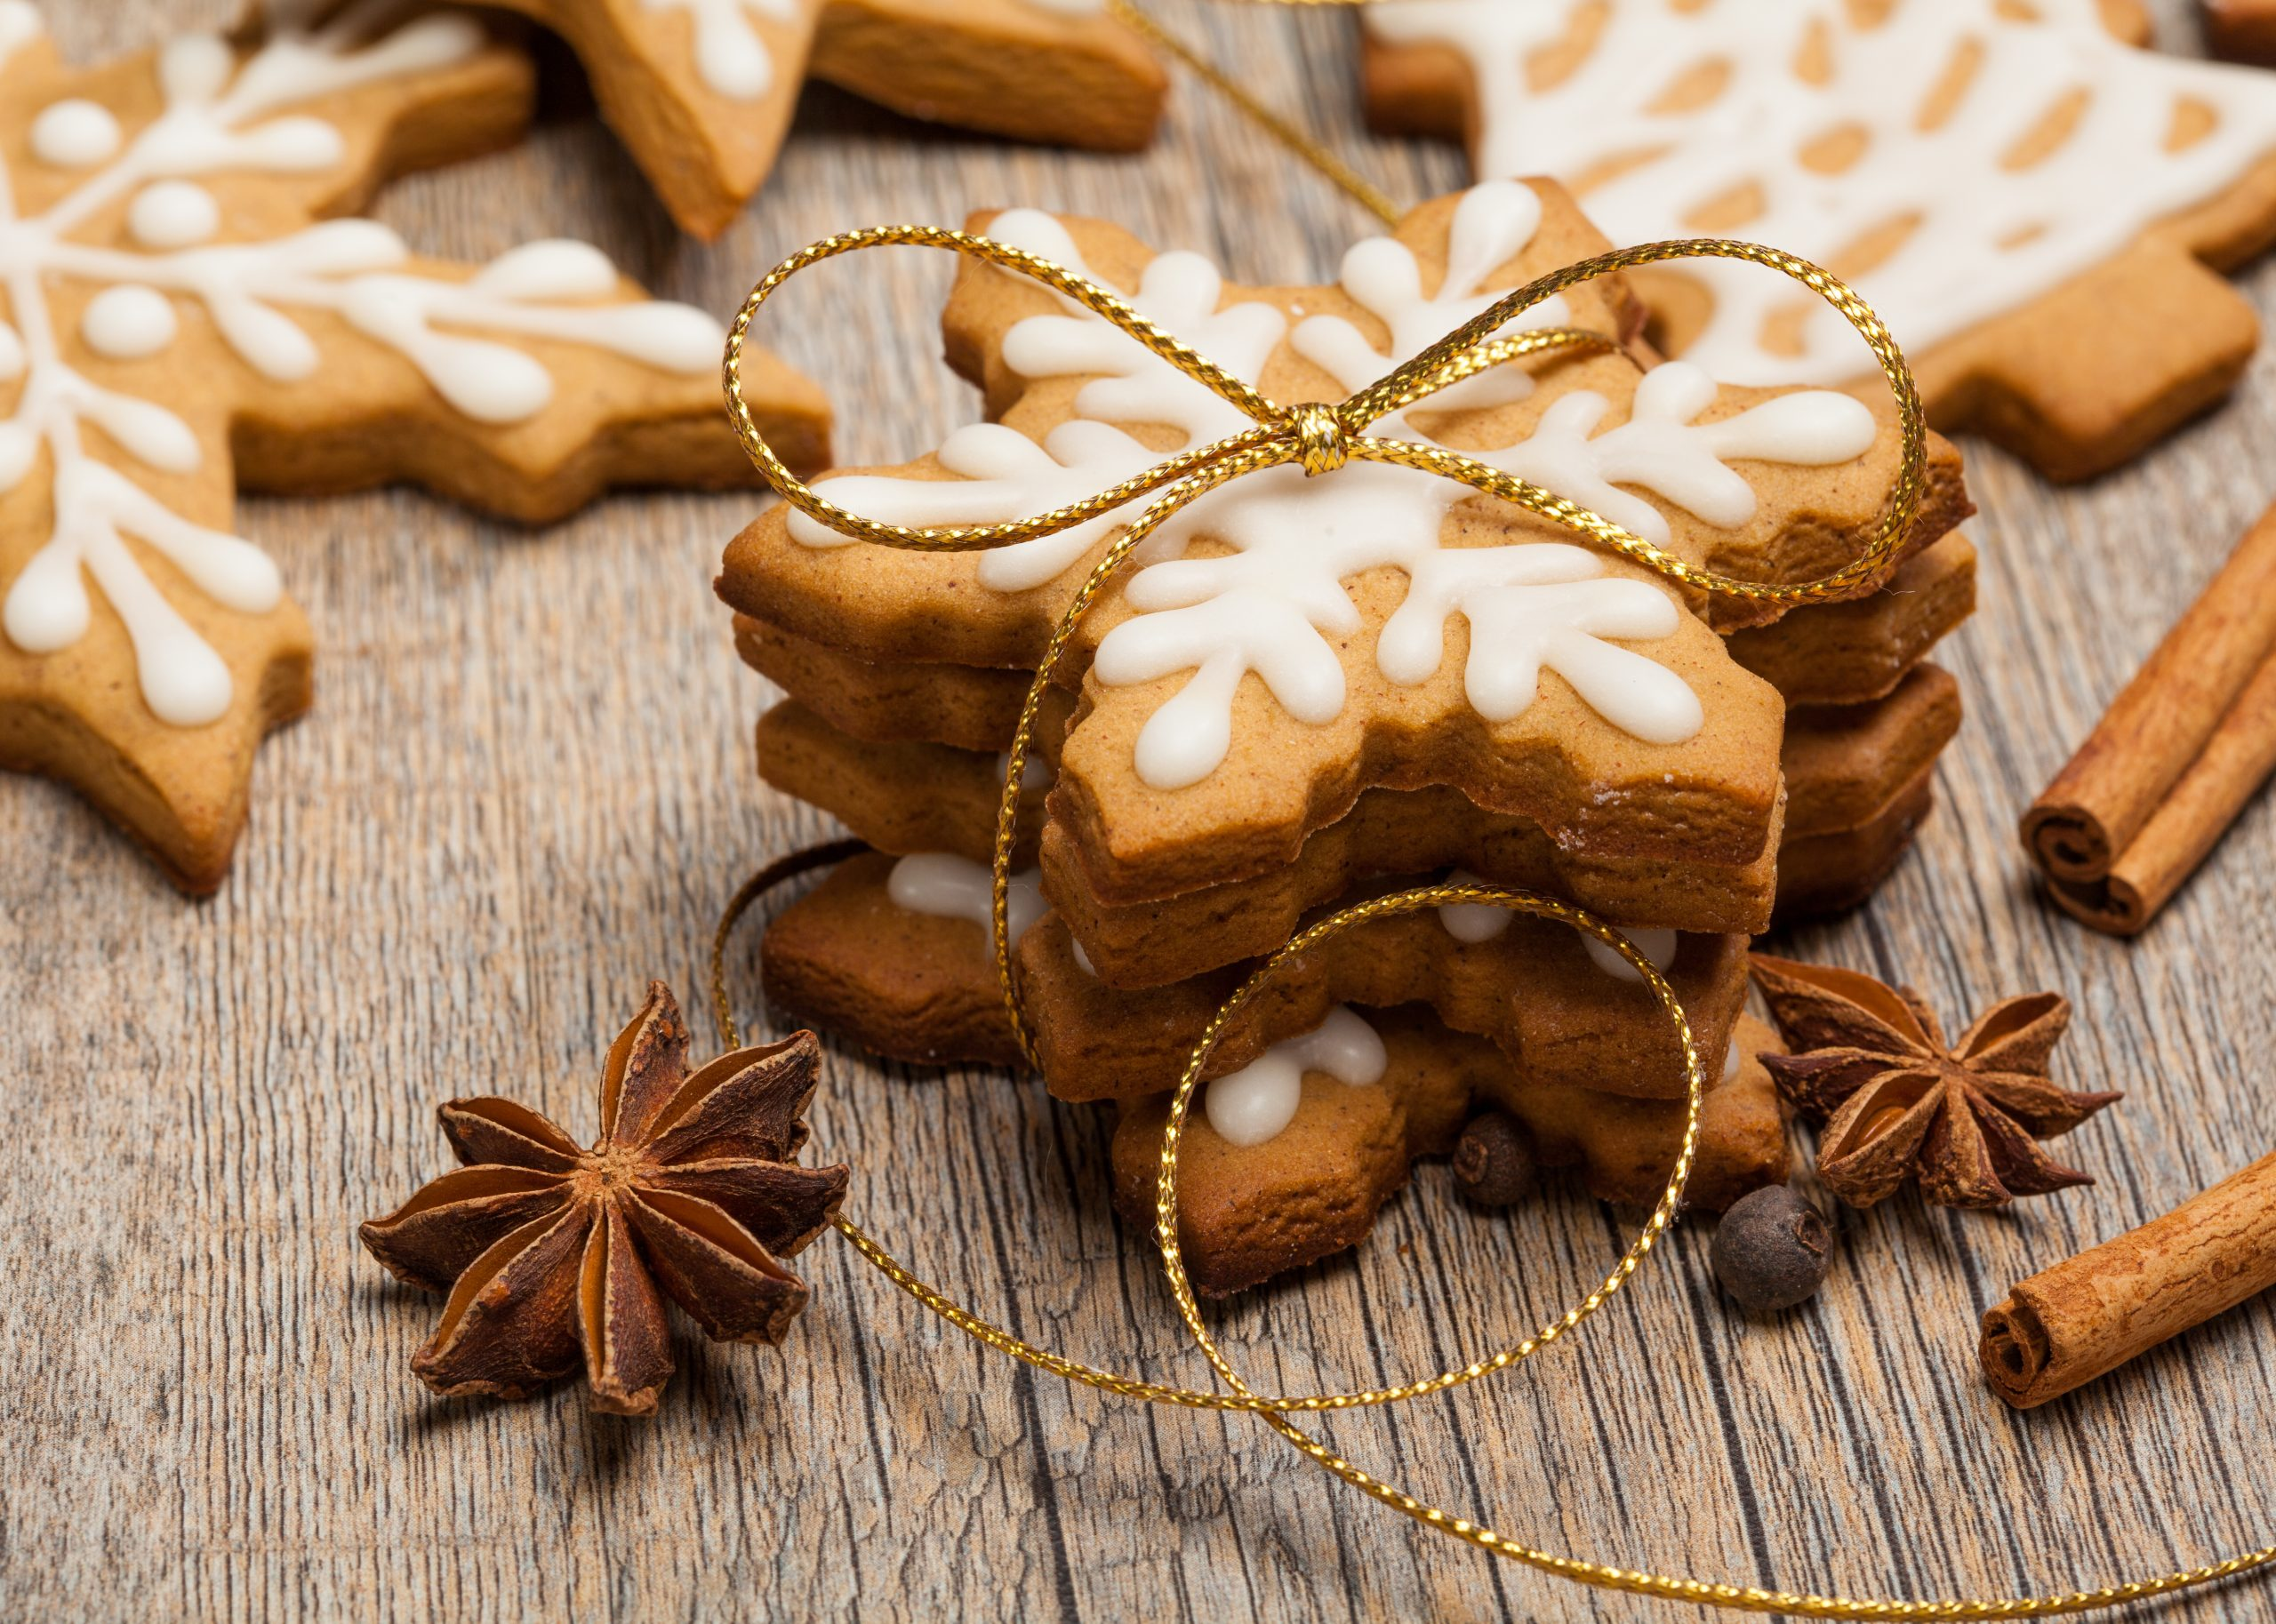 Gingerbread Cookie made with Extra Virgin Olive Oil